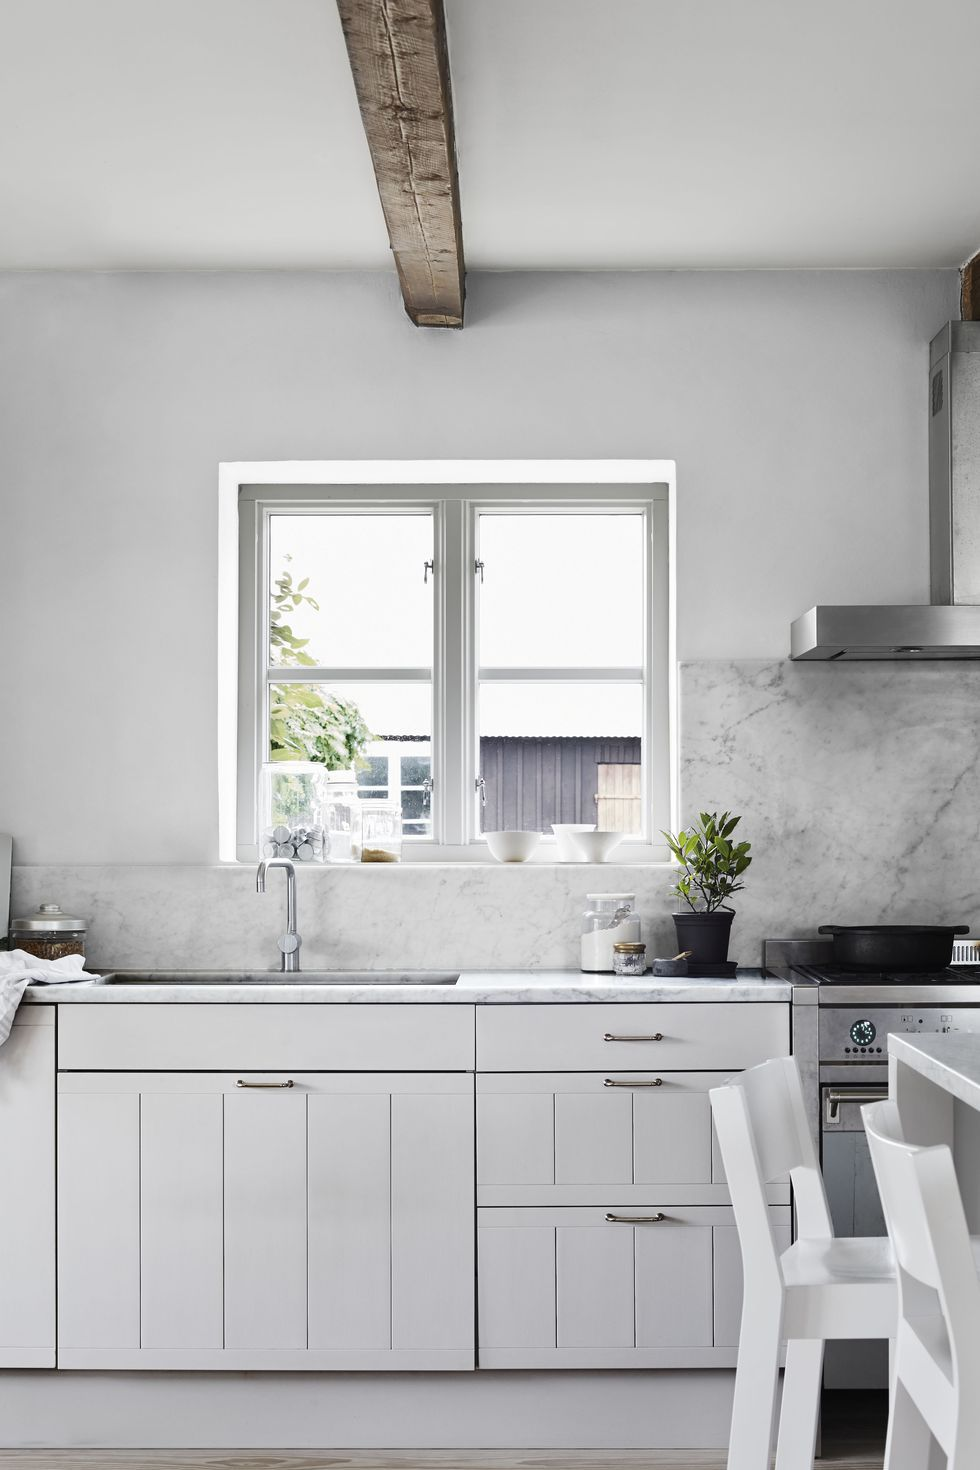 Grey and white hues add charm to a farmhouse kitchen design featuring a range, hood, and sink by Smeg, fittings by Vola, Carrara marble counters, and cabinetry painted in Farrow & Ball's Cornforth White.